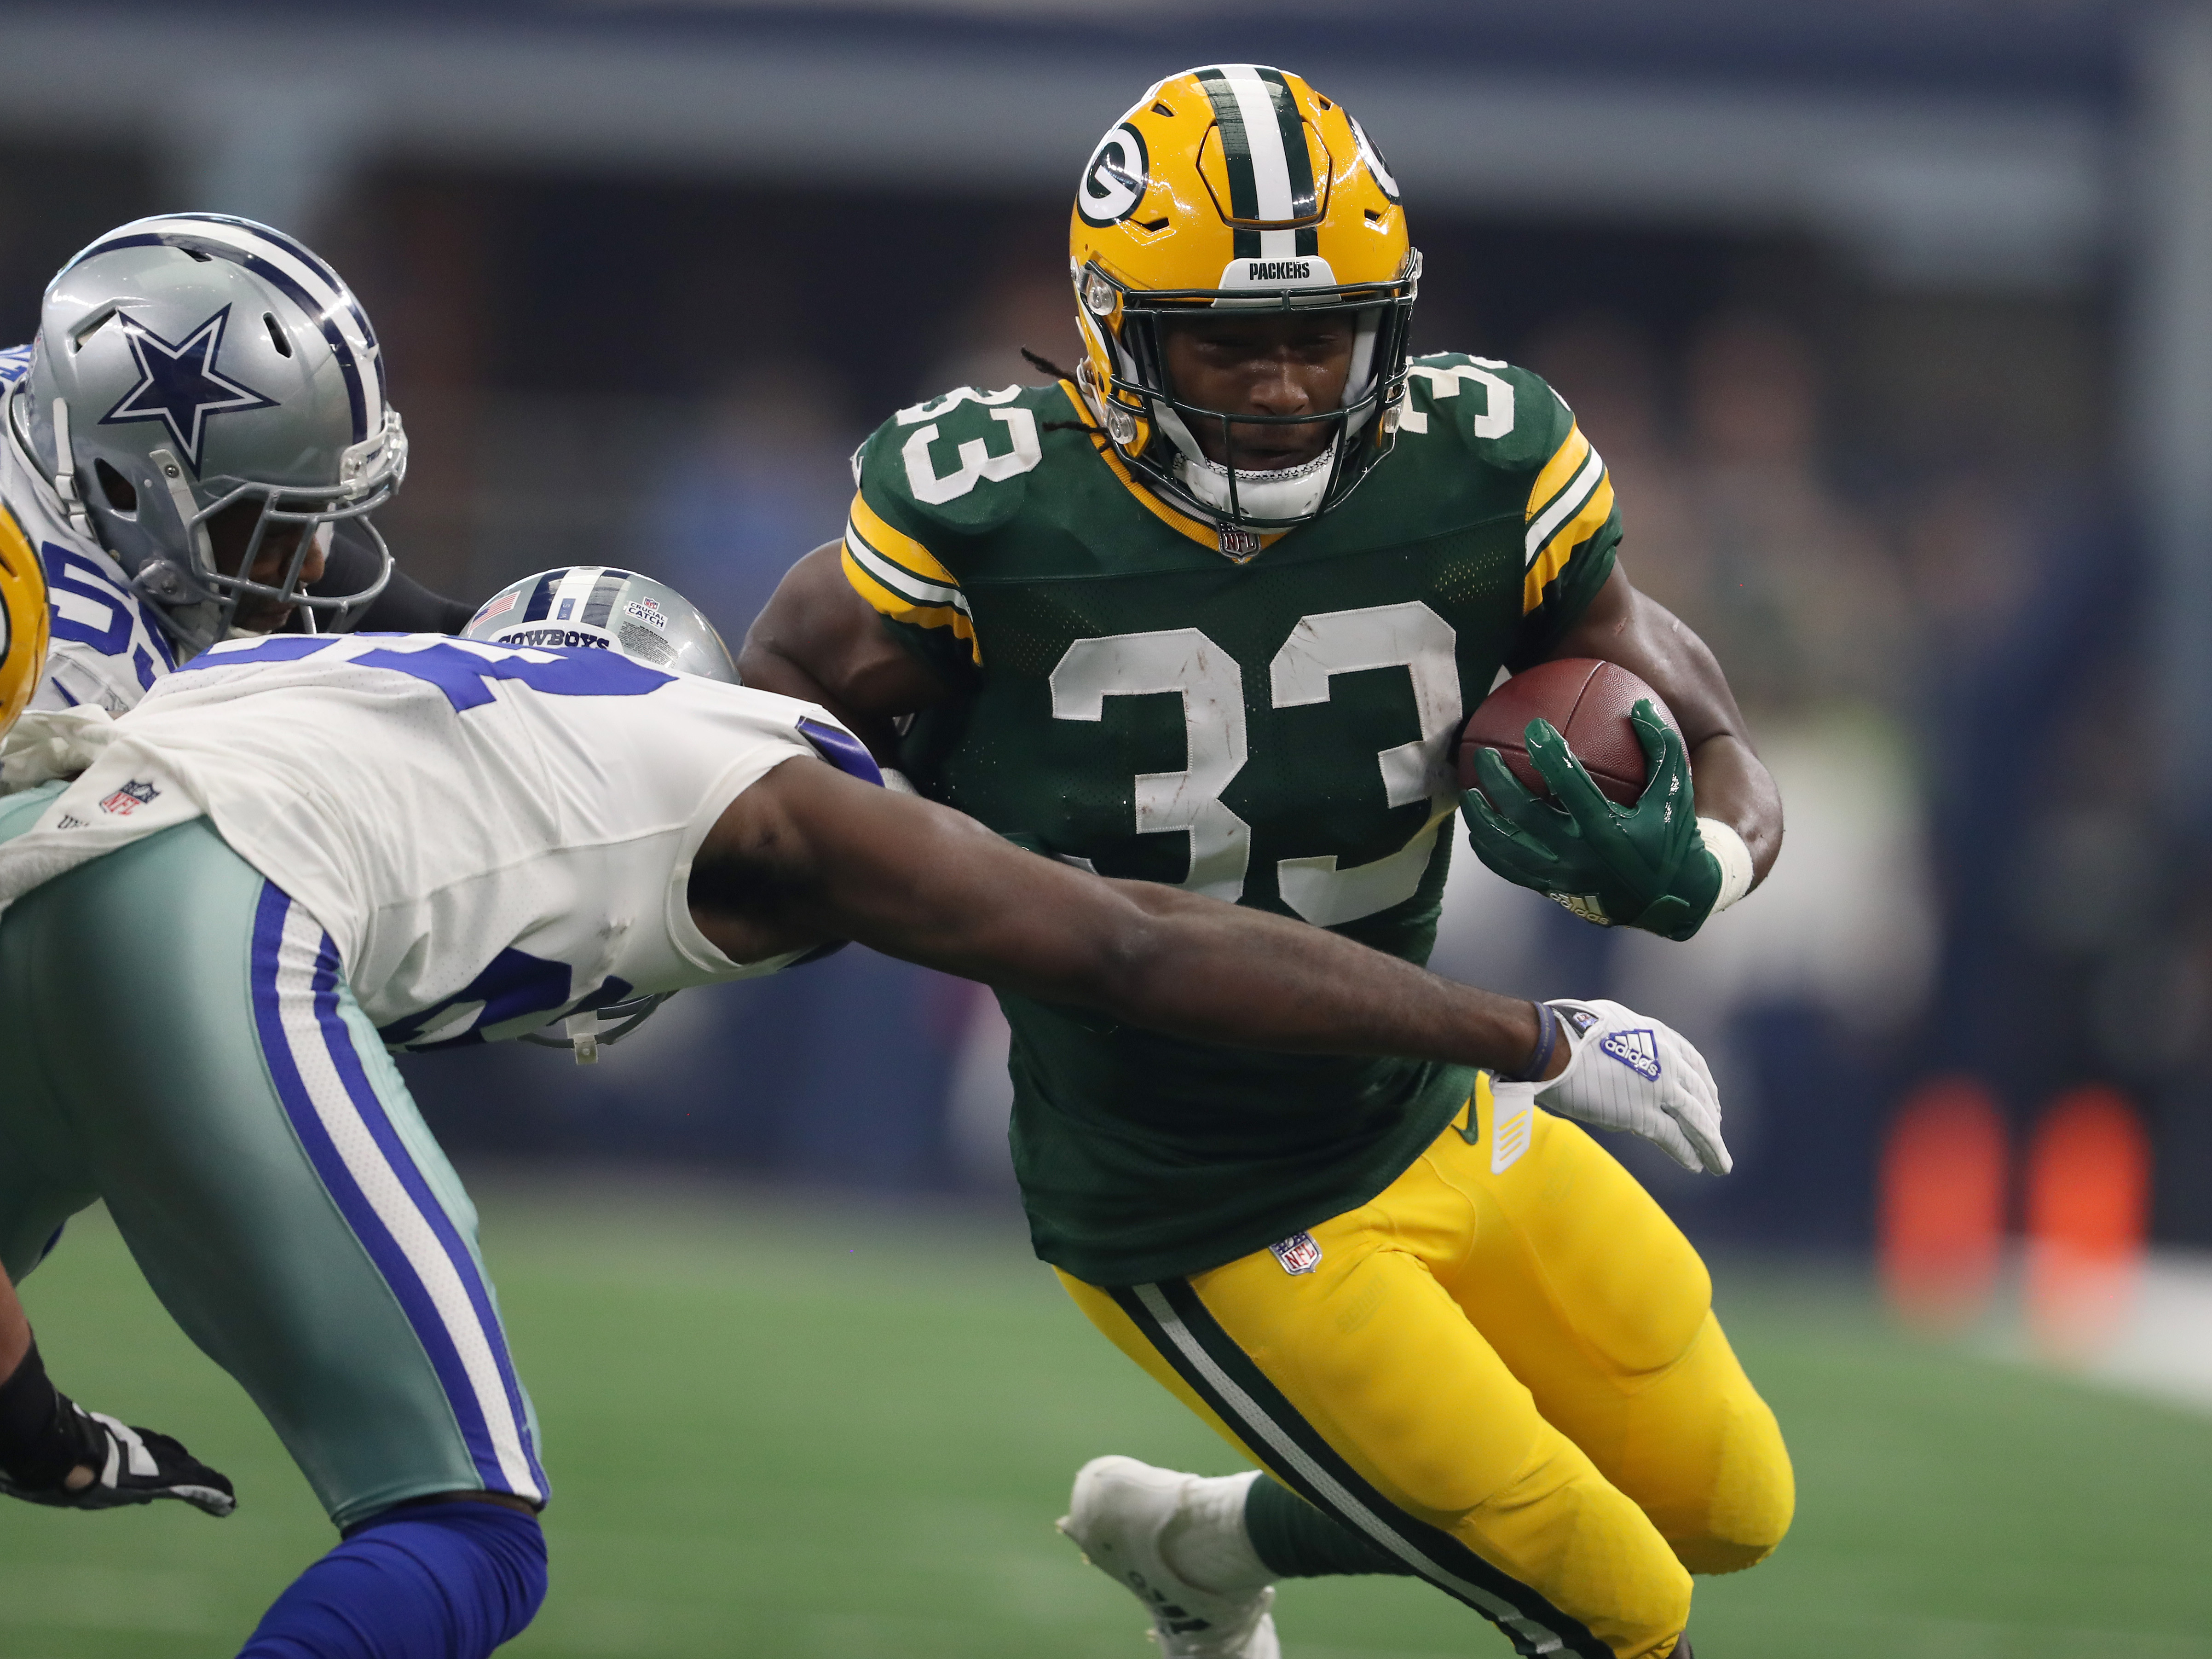 Six Key Matchups That Will Determine the Winner of Packers vs Cowboys